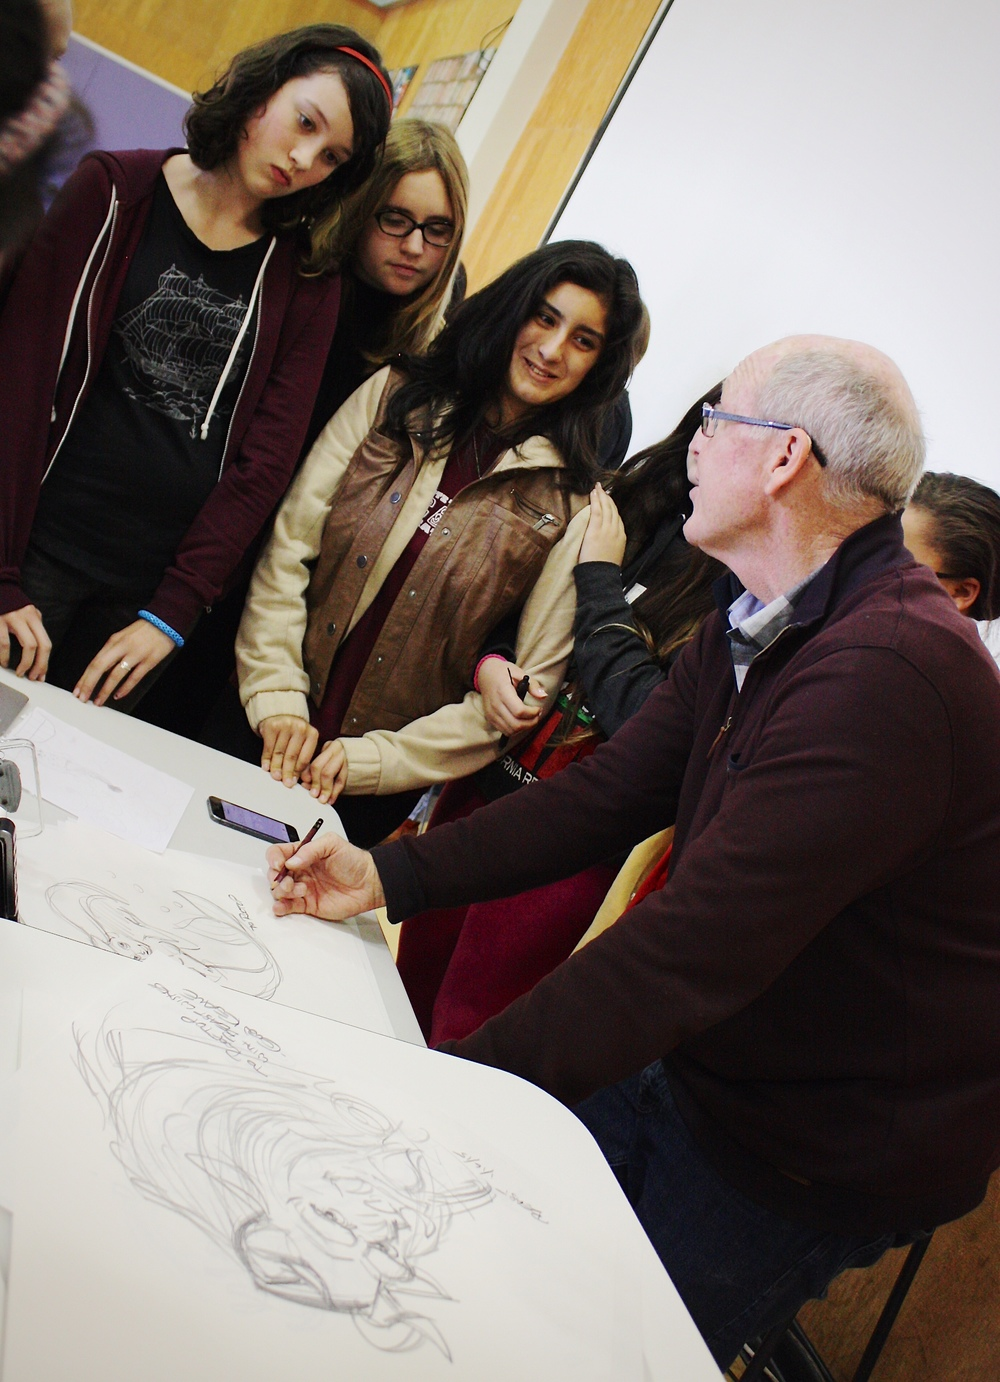 Keane speaking with students one-on-one after his live drawing demonstration. Photo by Keith Zwölfer.